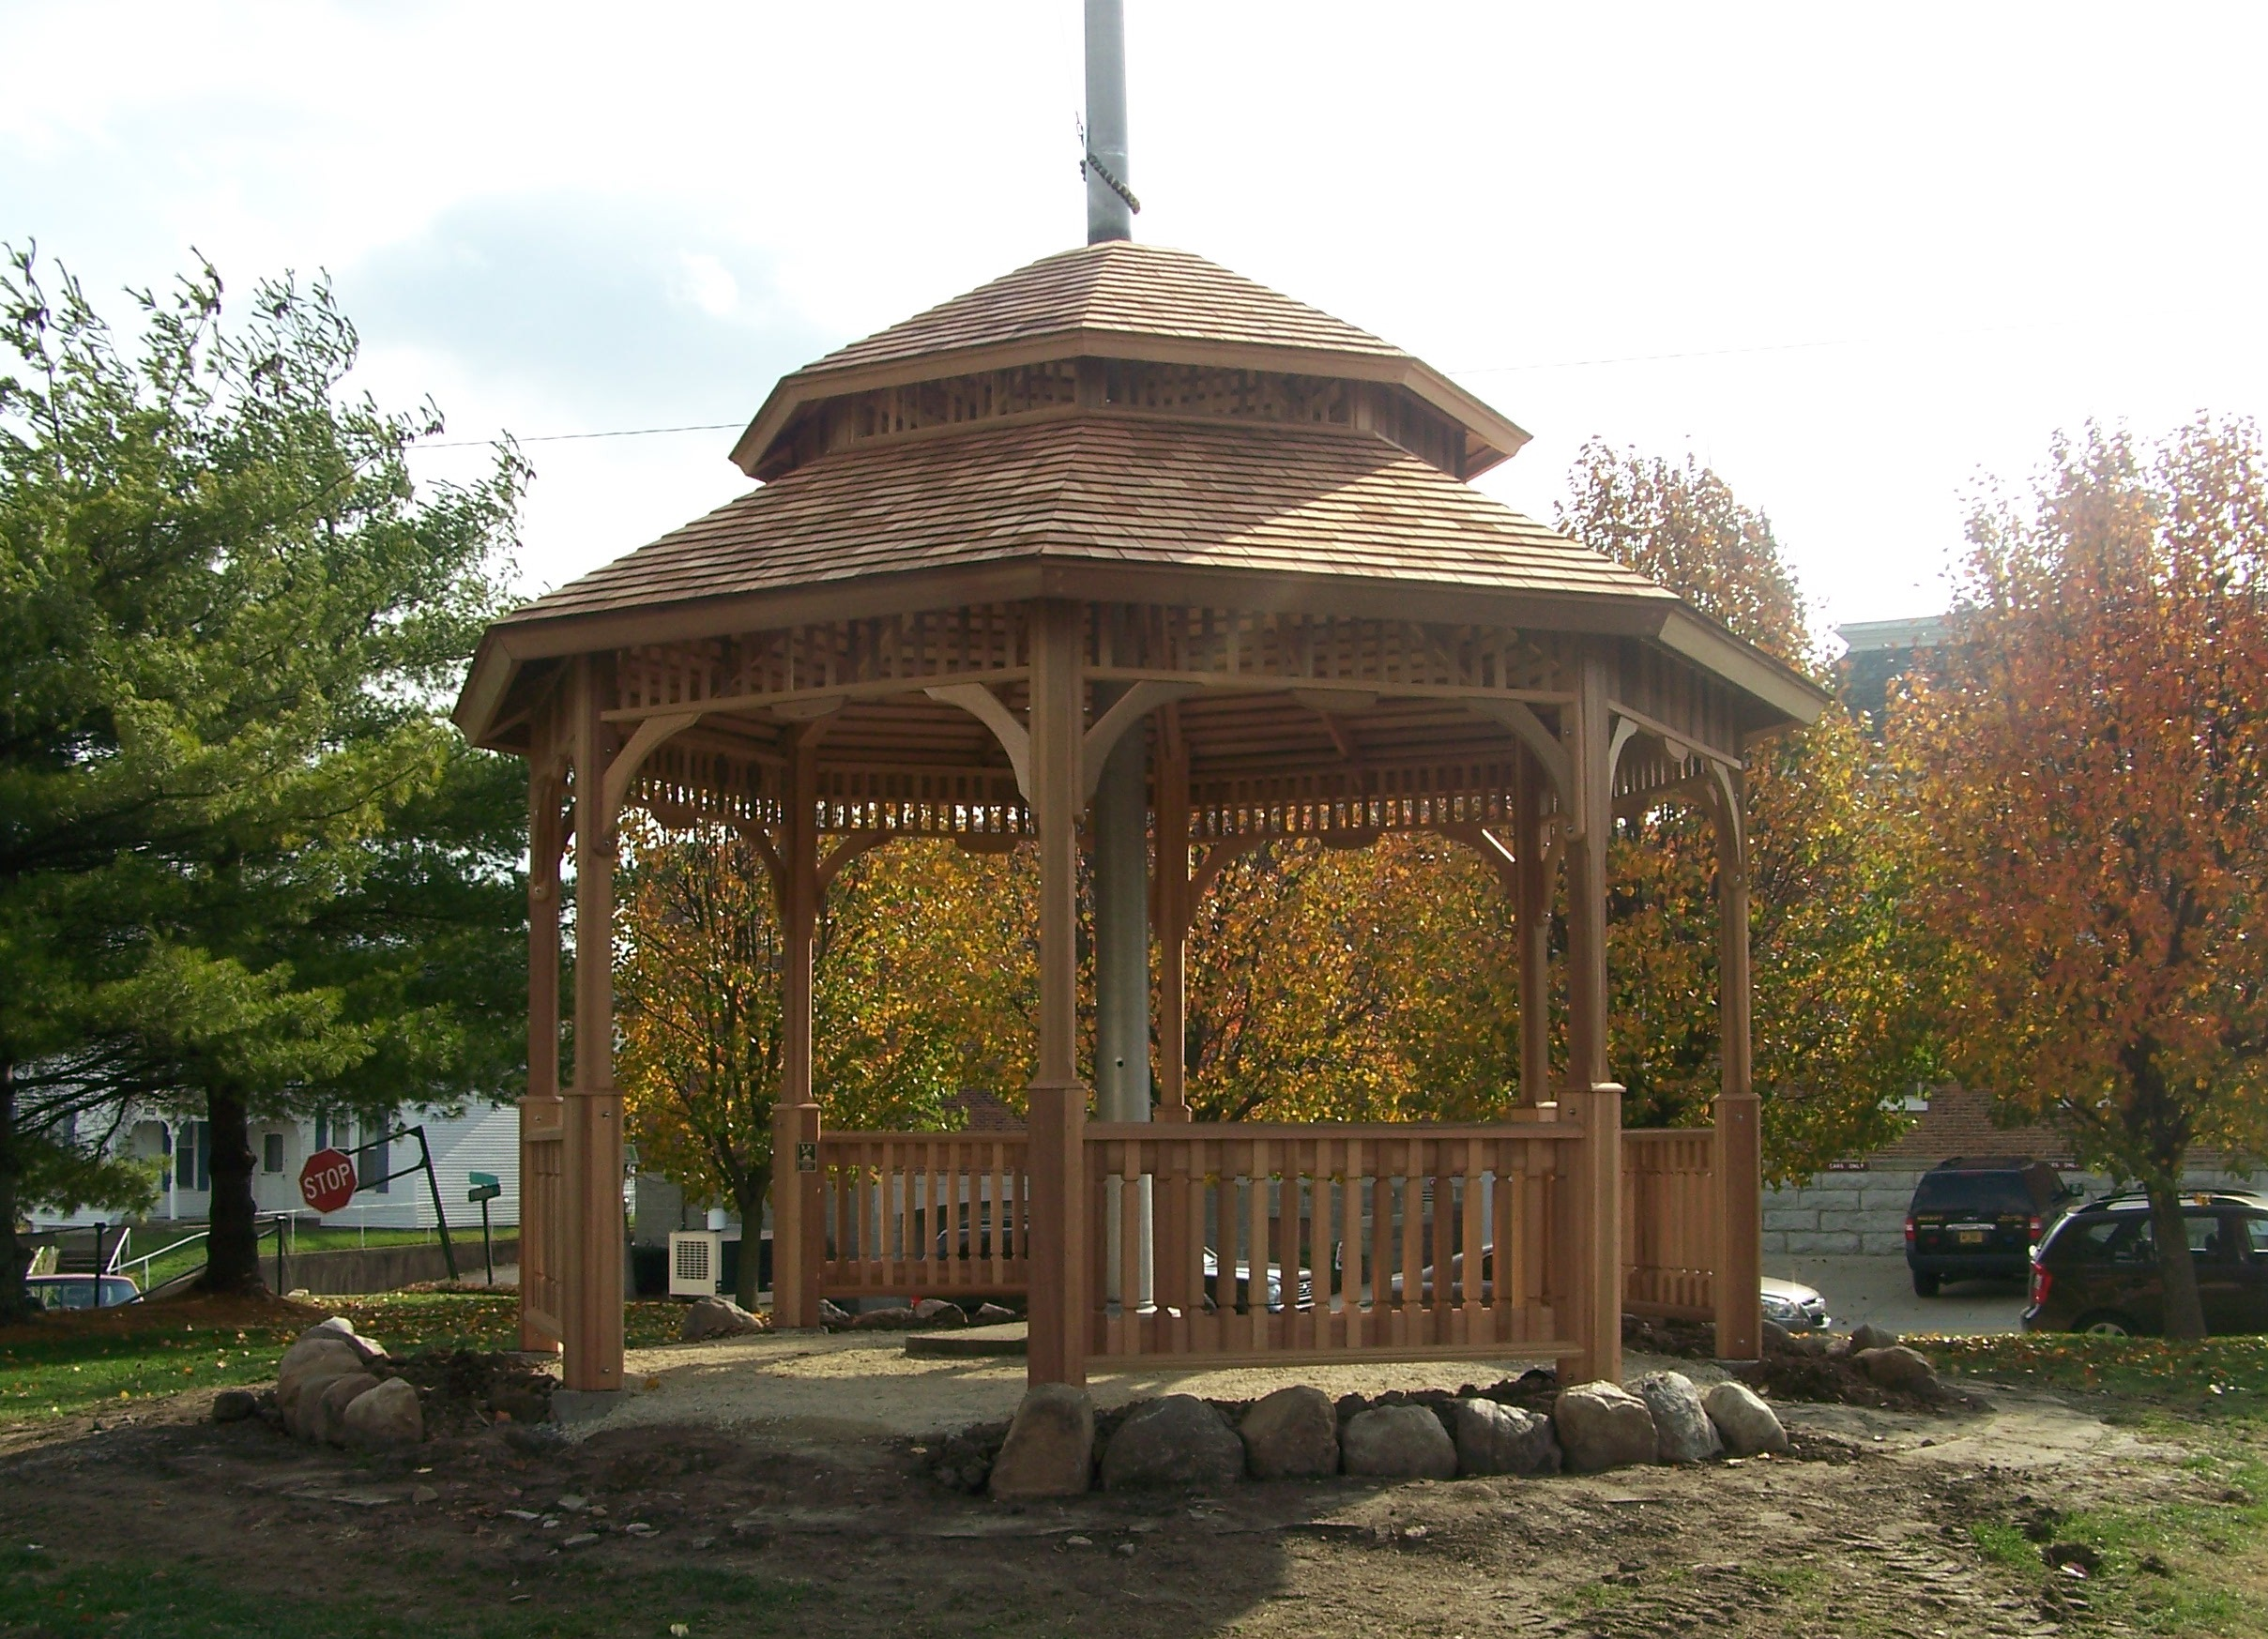 In 2011 A Beautiful Gazebo Was Constructed On The Franklin County Courthouse Lawn Recognition Of Countys Bicentennial Celebration